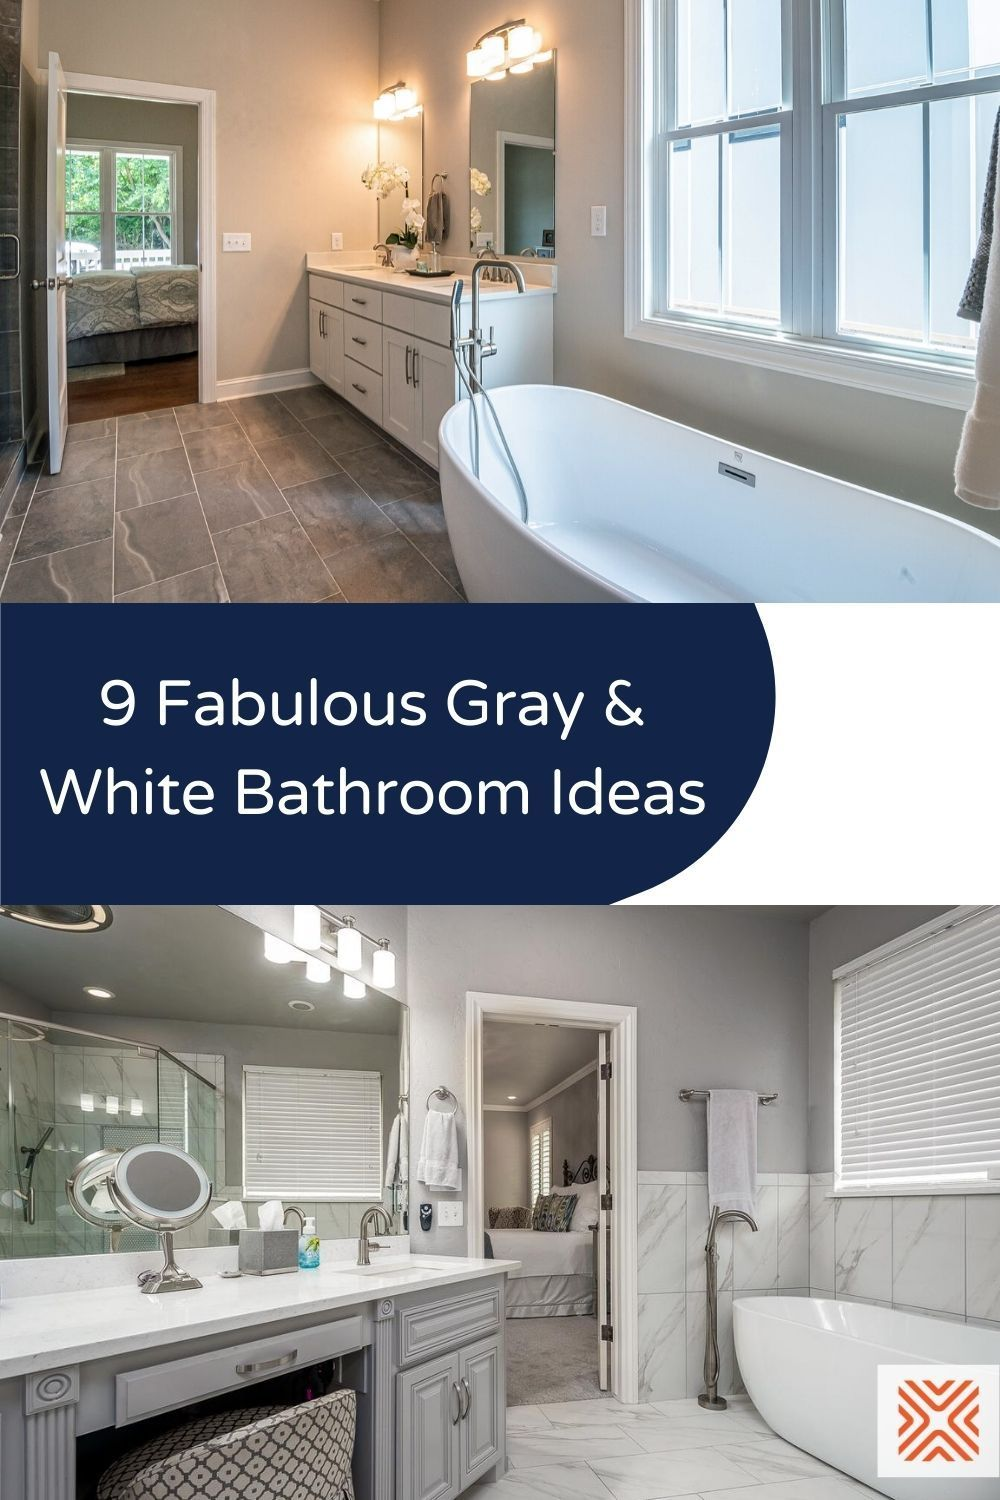 There are tons of great gray and white bathroom decor ideas that you can find online, and we just so happen to have listed the best for you in this article! So what are you waiting for? Click here and discover these dazzling bathroom design ideas.